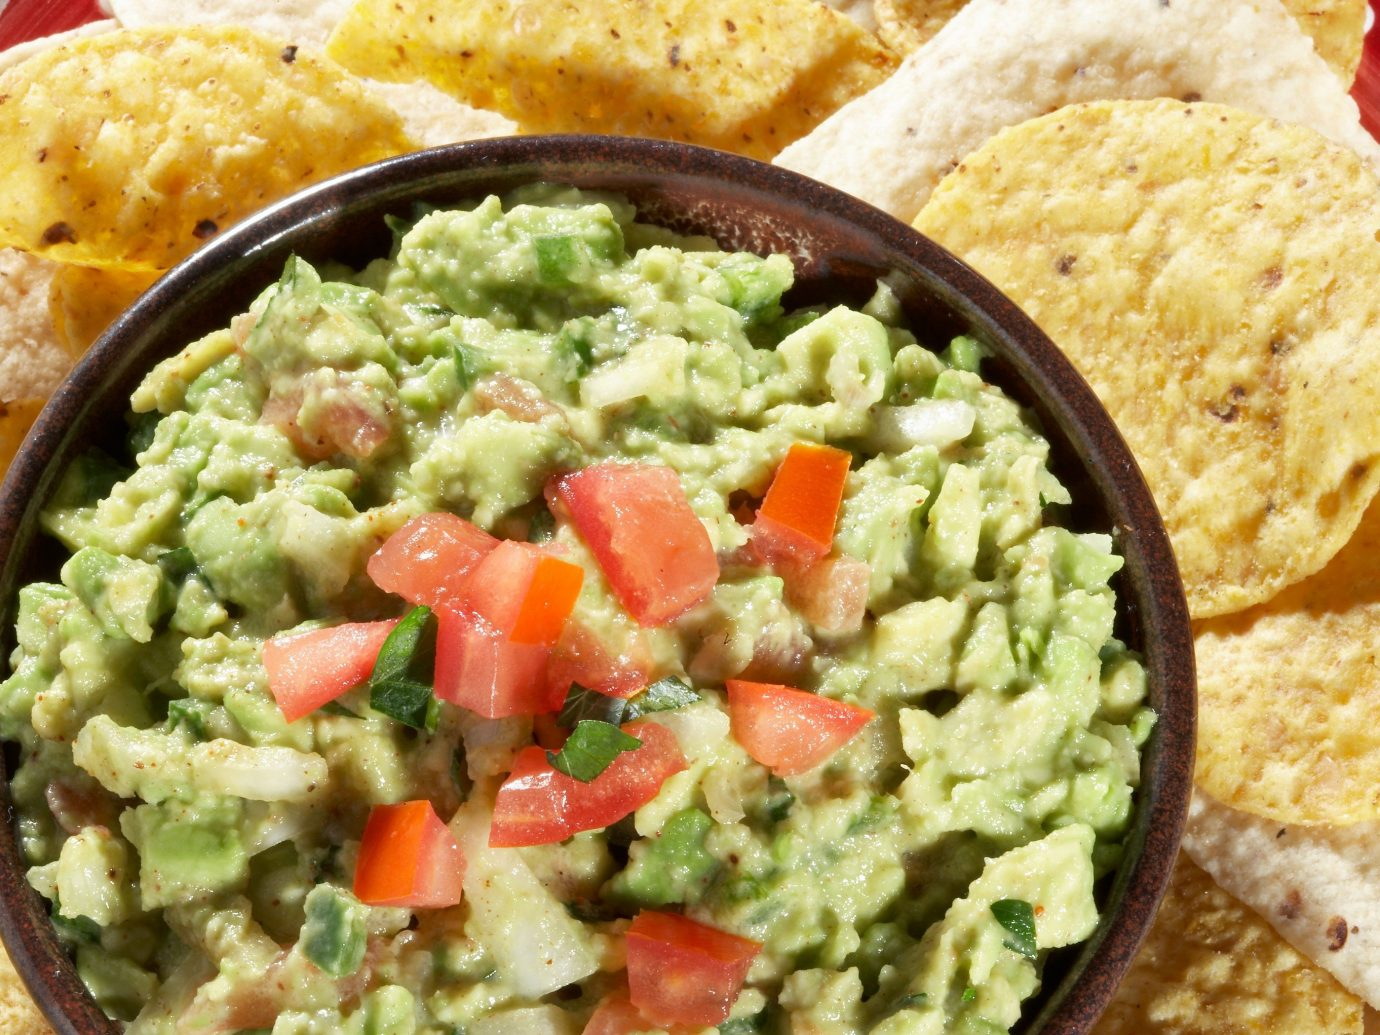 Food + Drink Trip Ideas food dish chip cuisine tostada guacamole vegetable dip rice snack food produce meal vegetarian food breakfast condiment different containing several variety